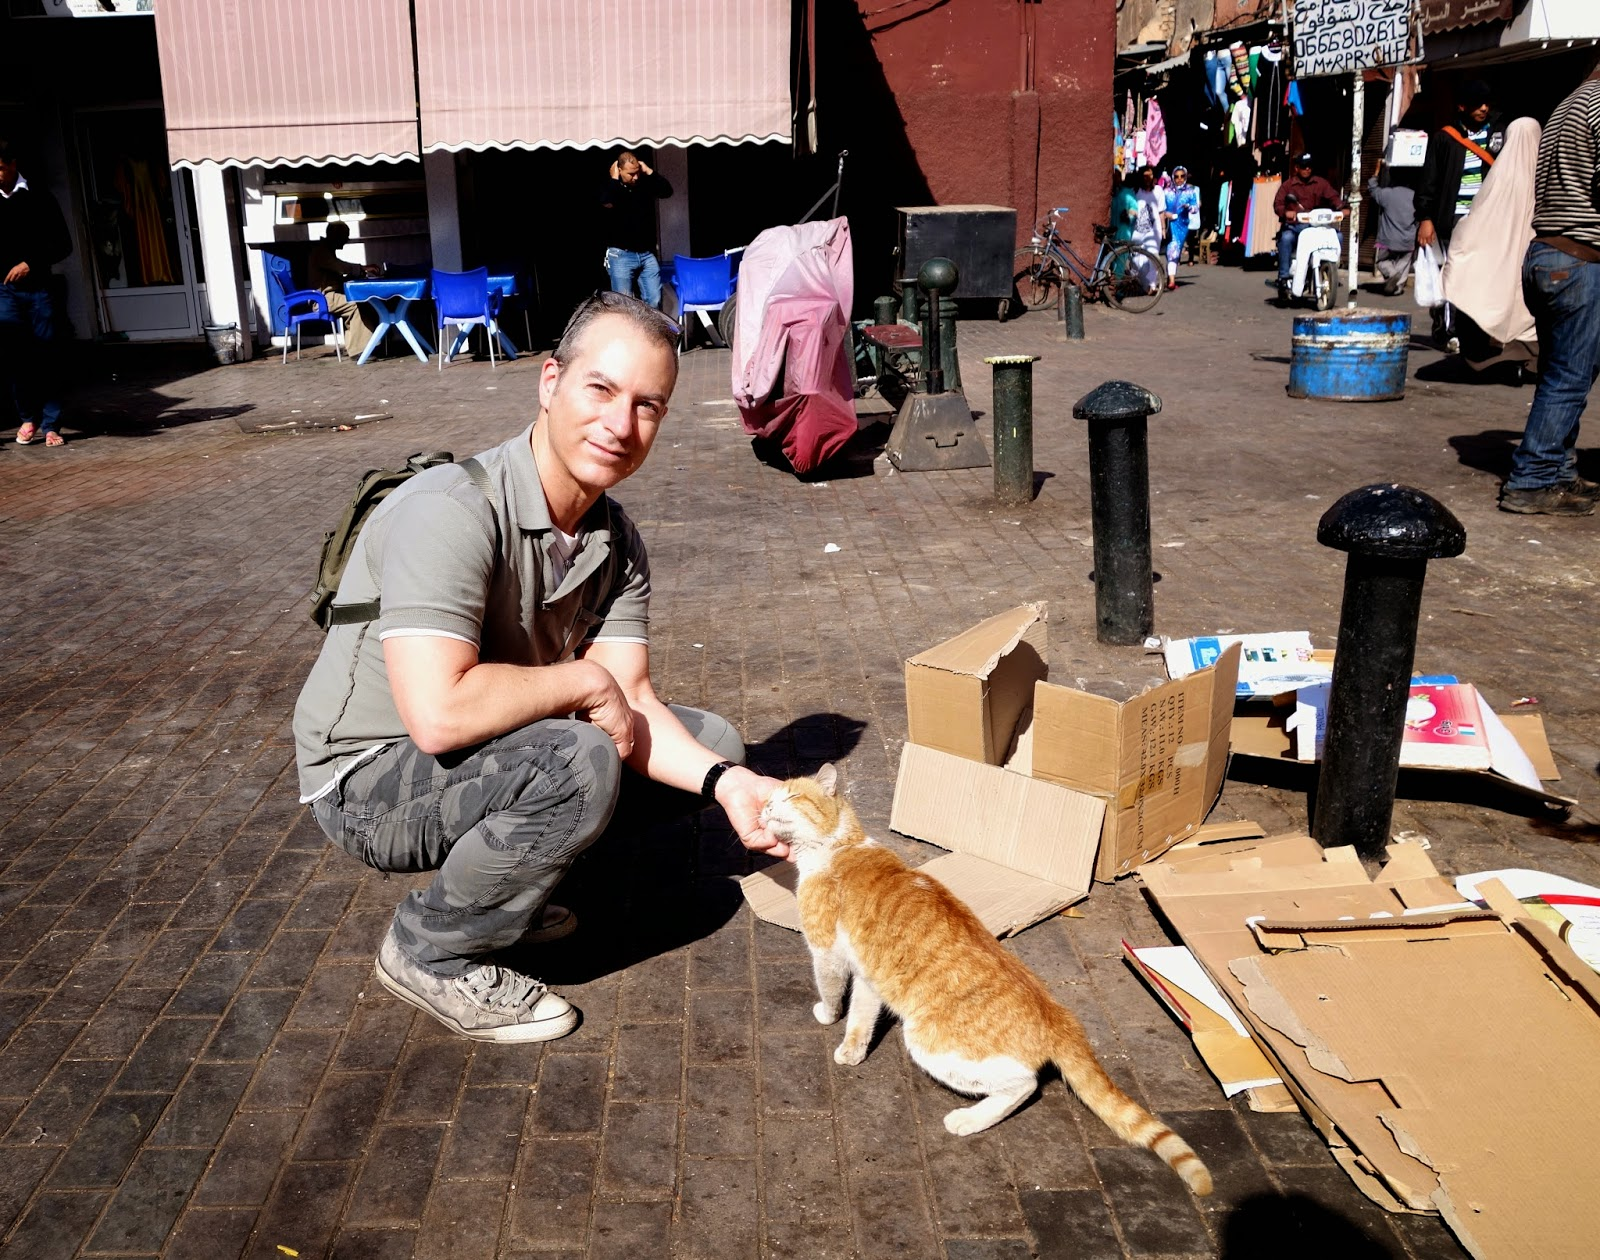 Arnold Plotnick in Morocco with Stray Cat